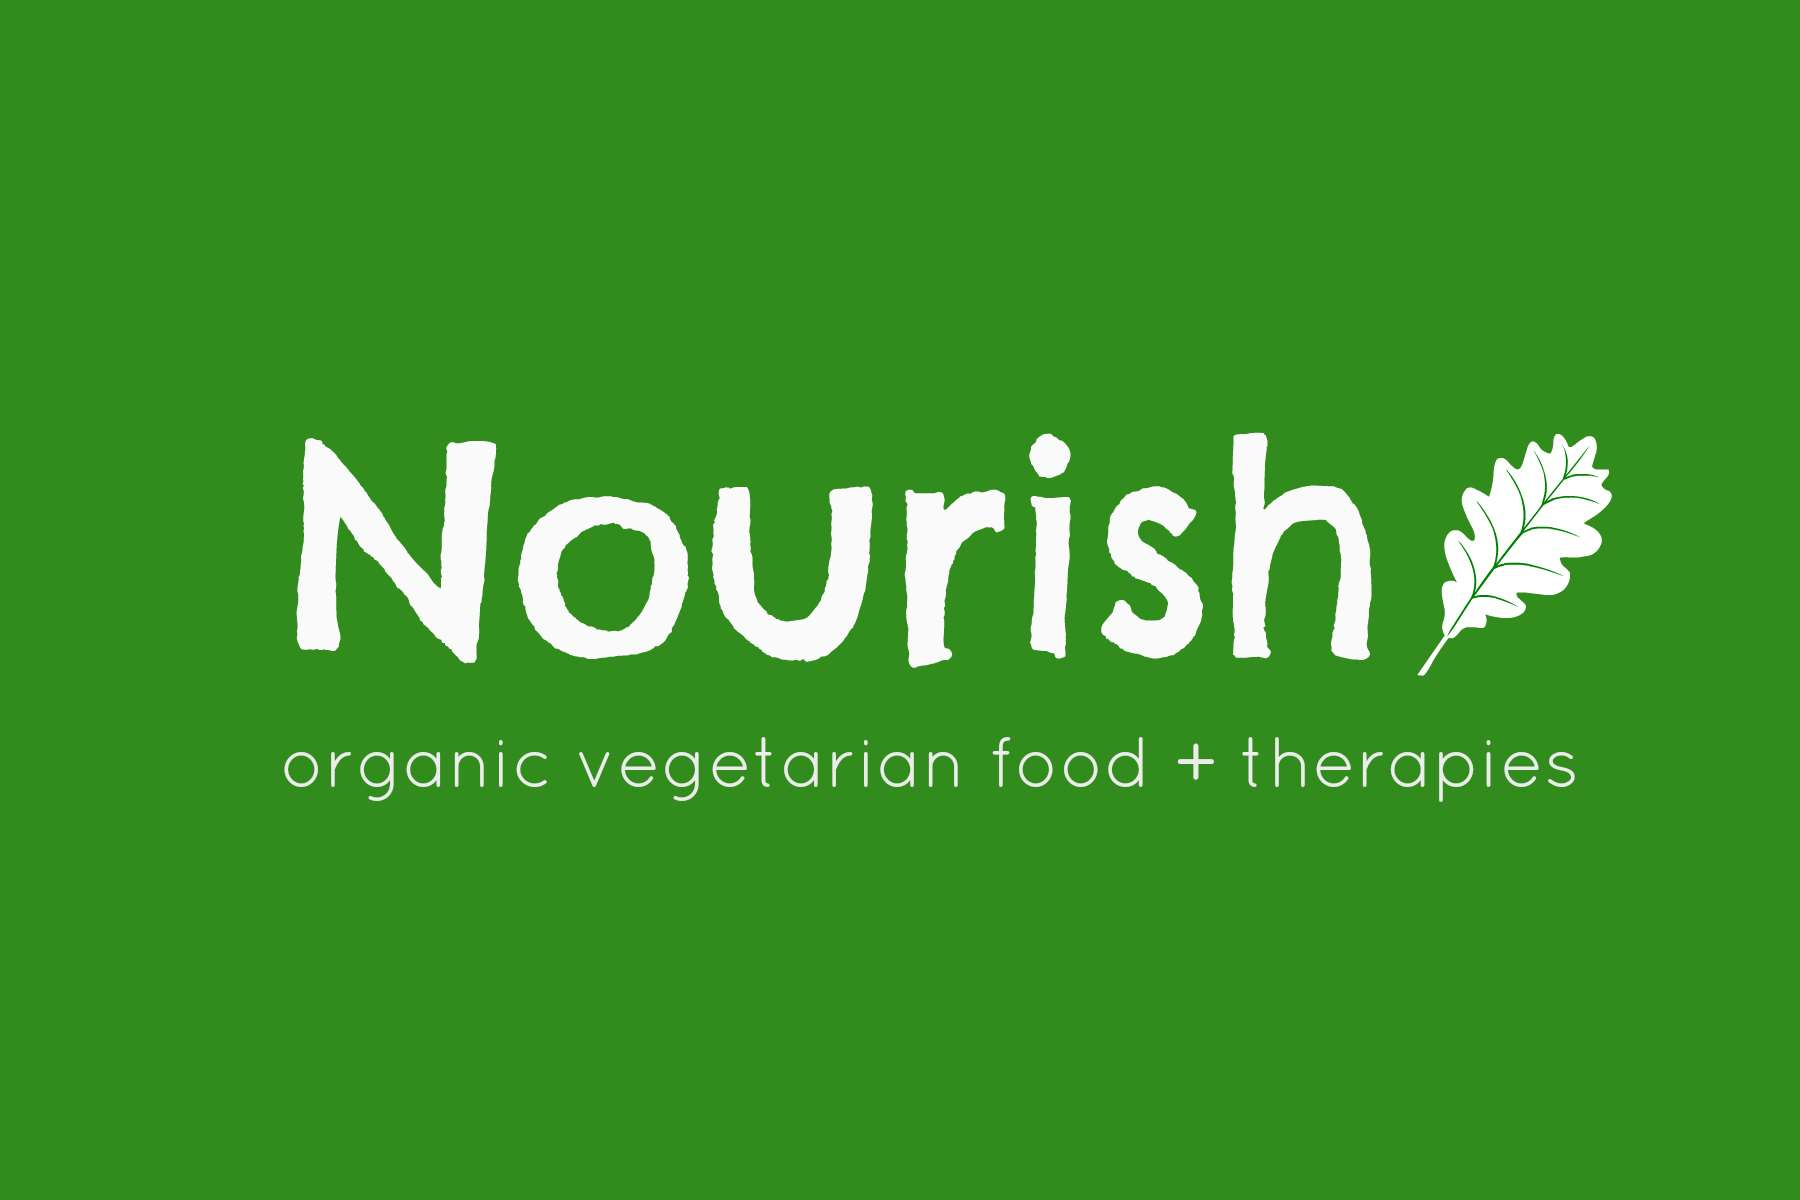 Nourish, Inverness